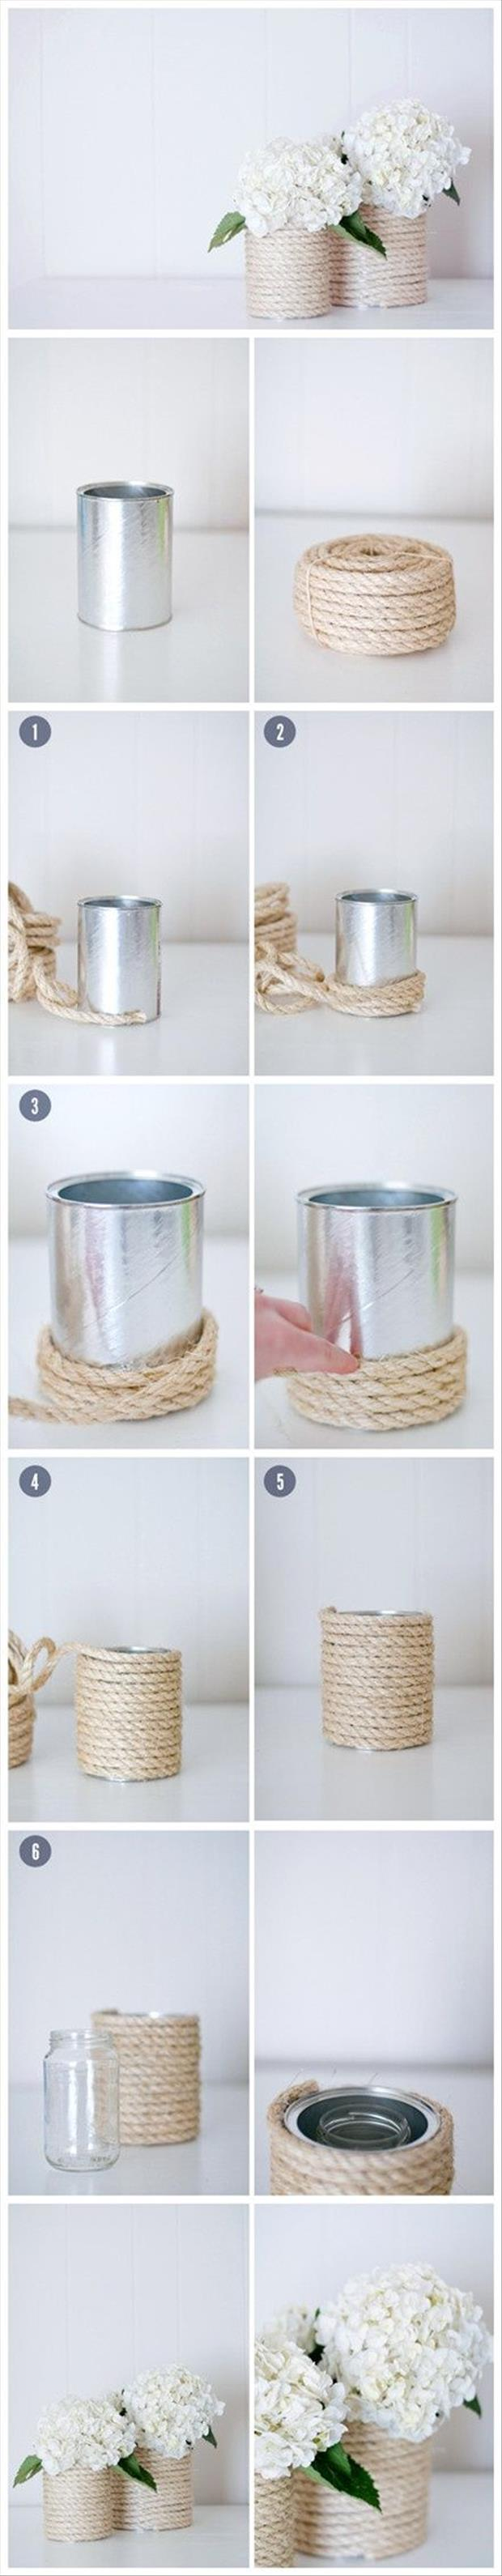 do it yourself craft ideas (2)